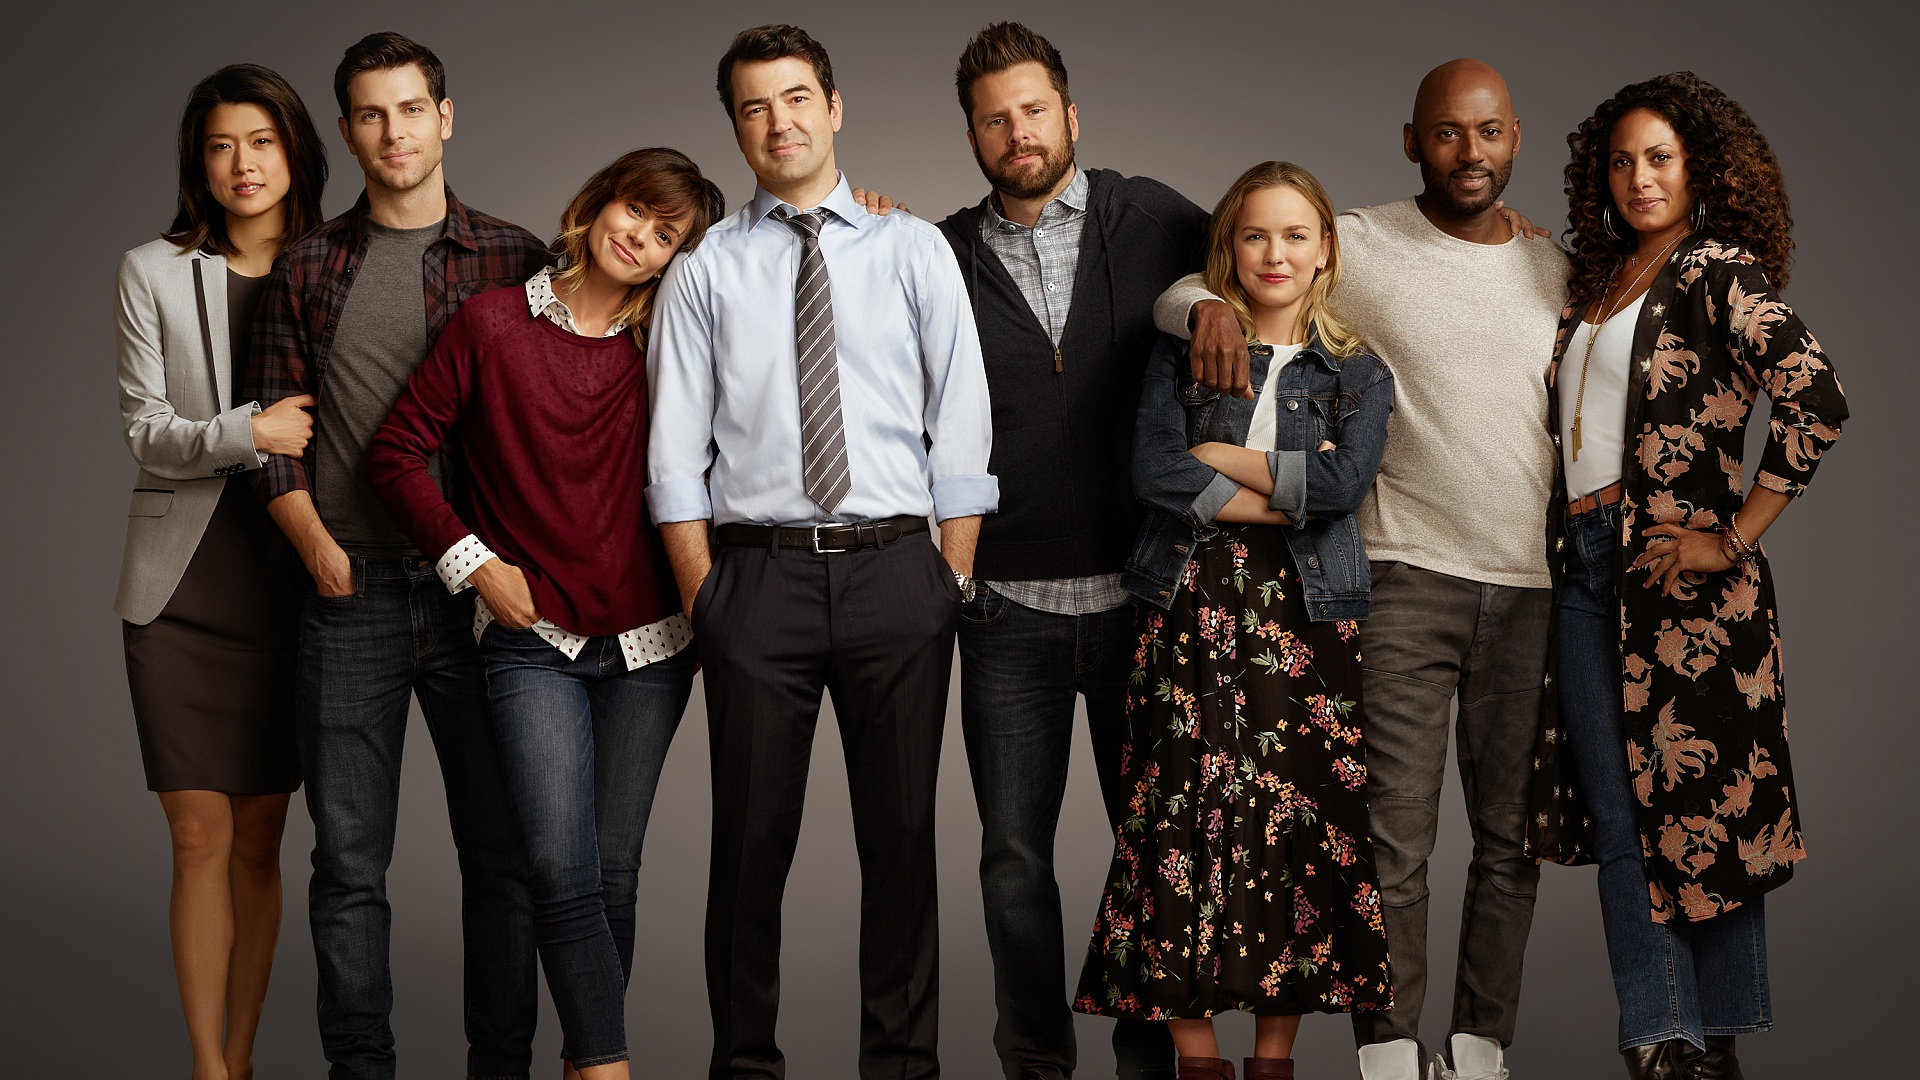 AMILLIONLITTLETHINGS